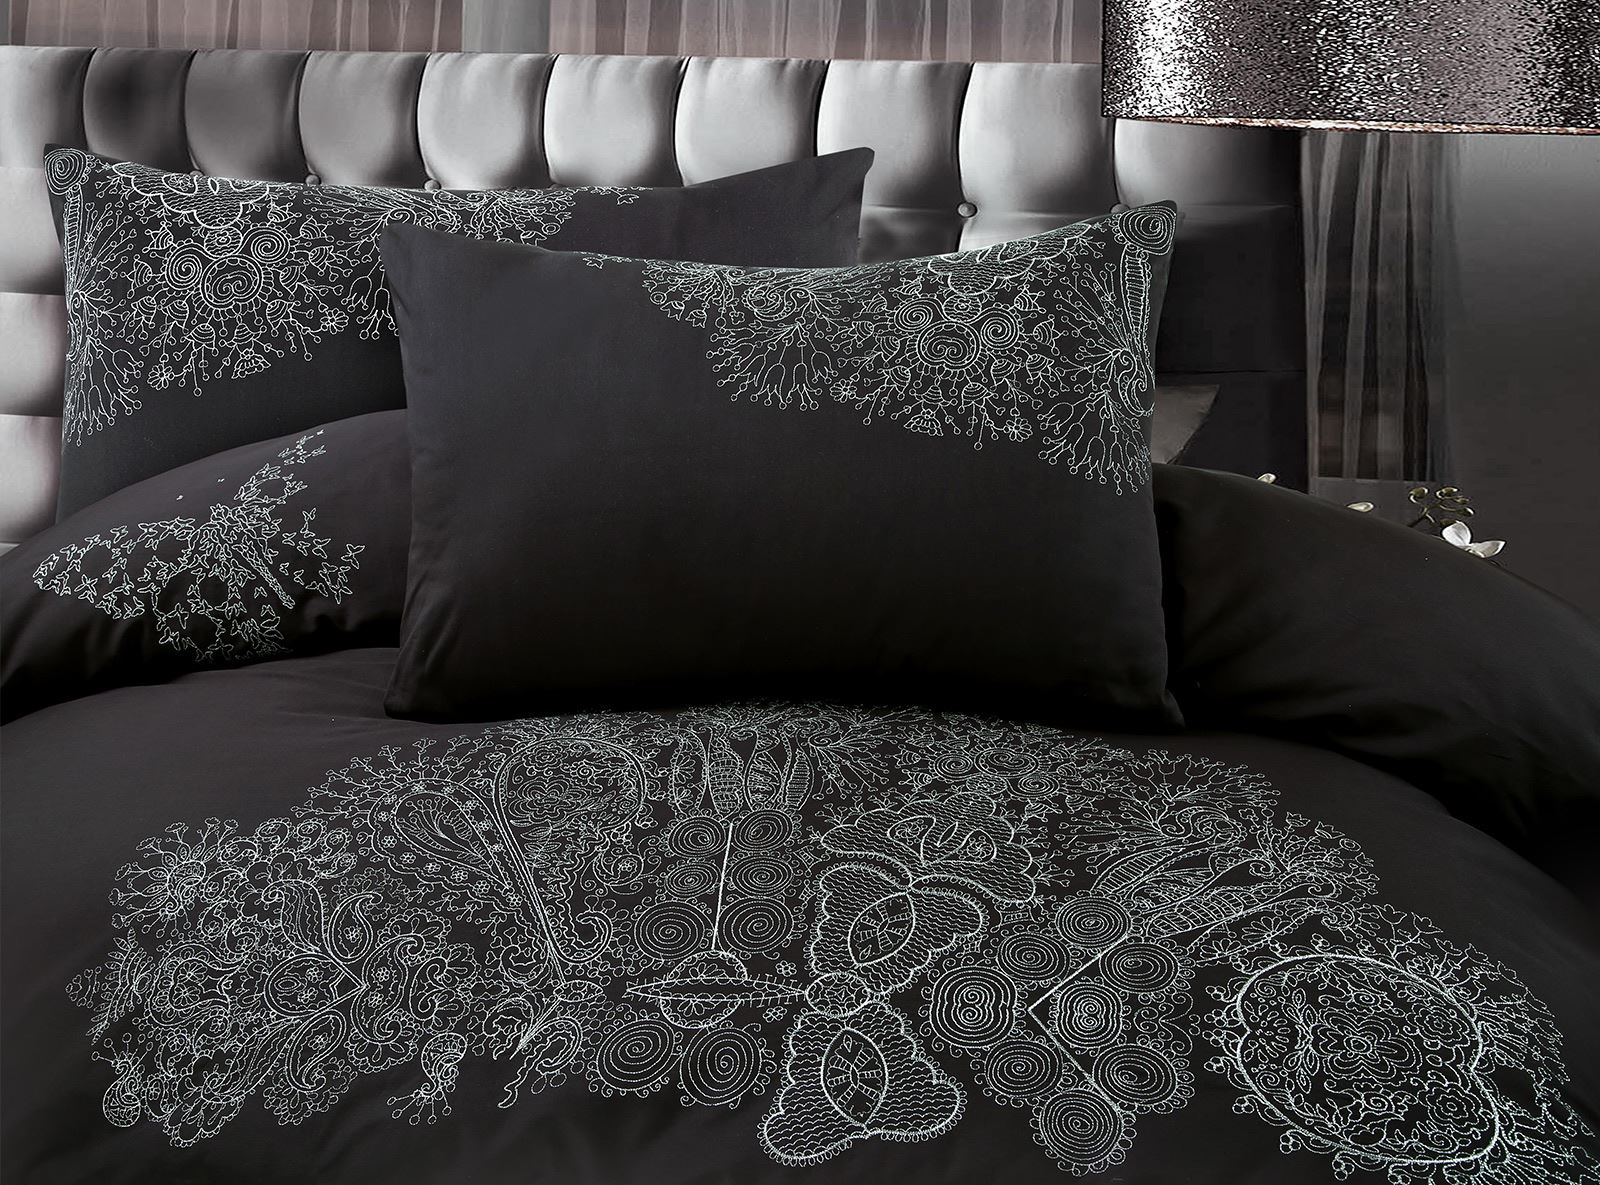 Chloe-Luxury-100-Cotton-Silver-Embroidery-Embroidered-Duvet-Cover-Bedding-Set thumbnail 5